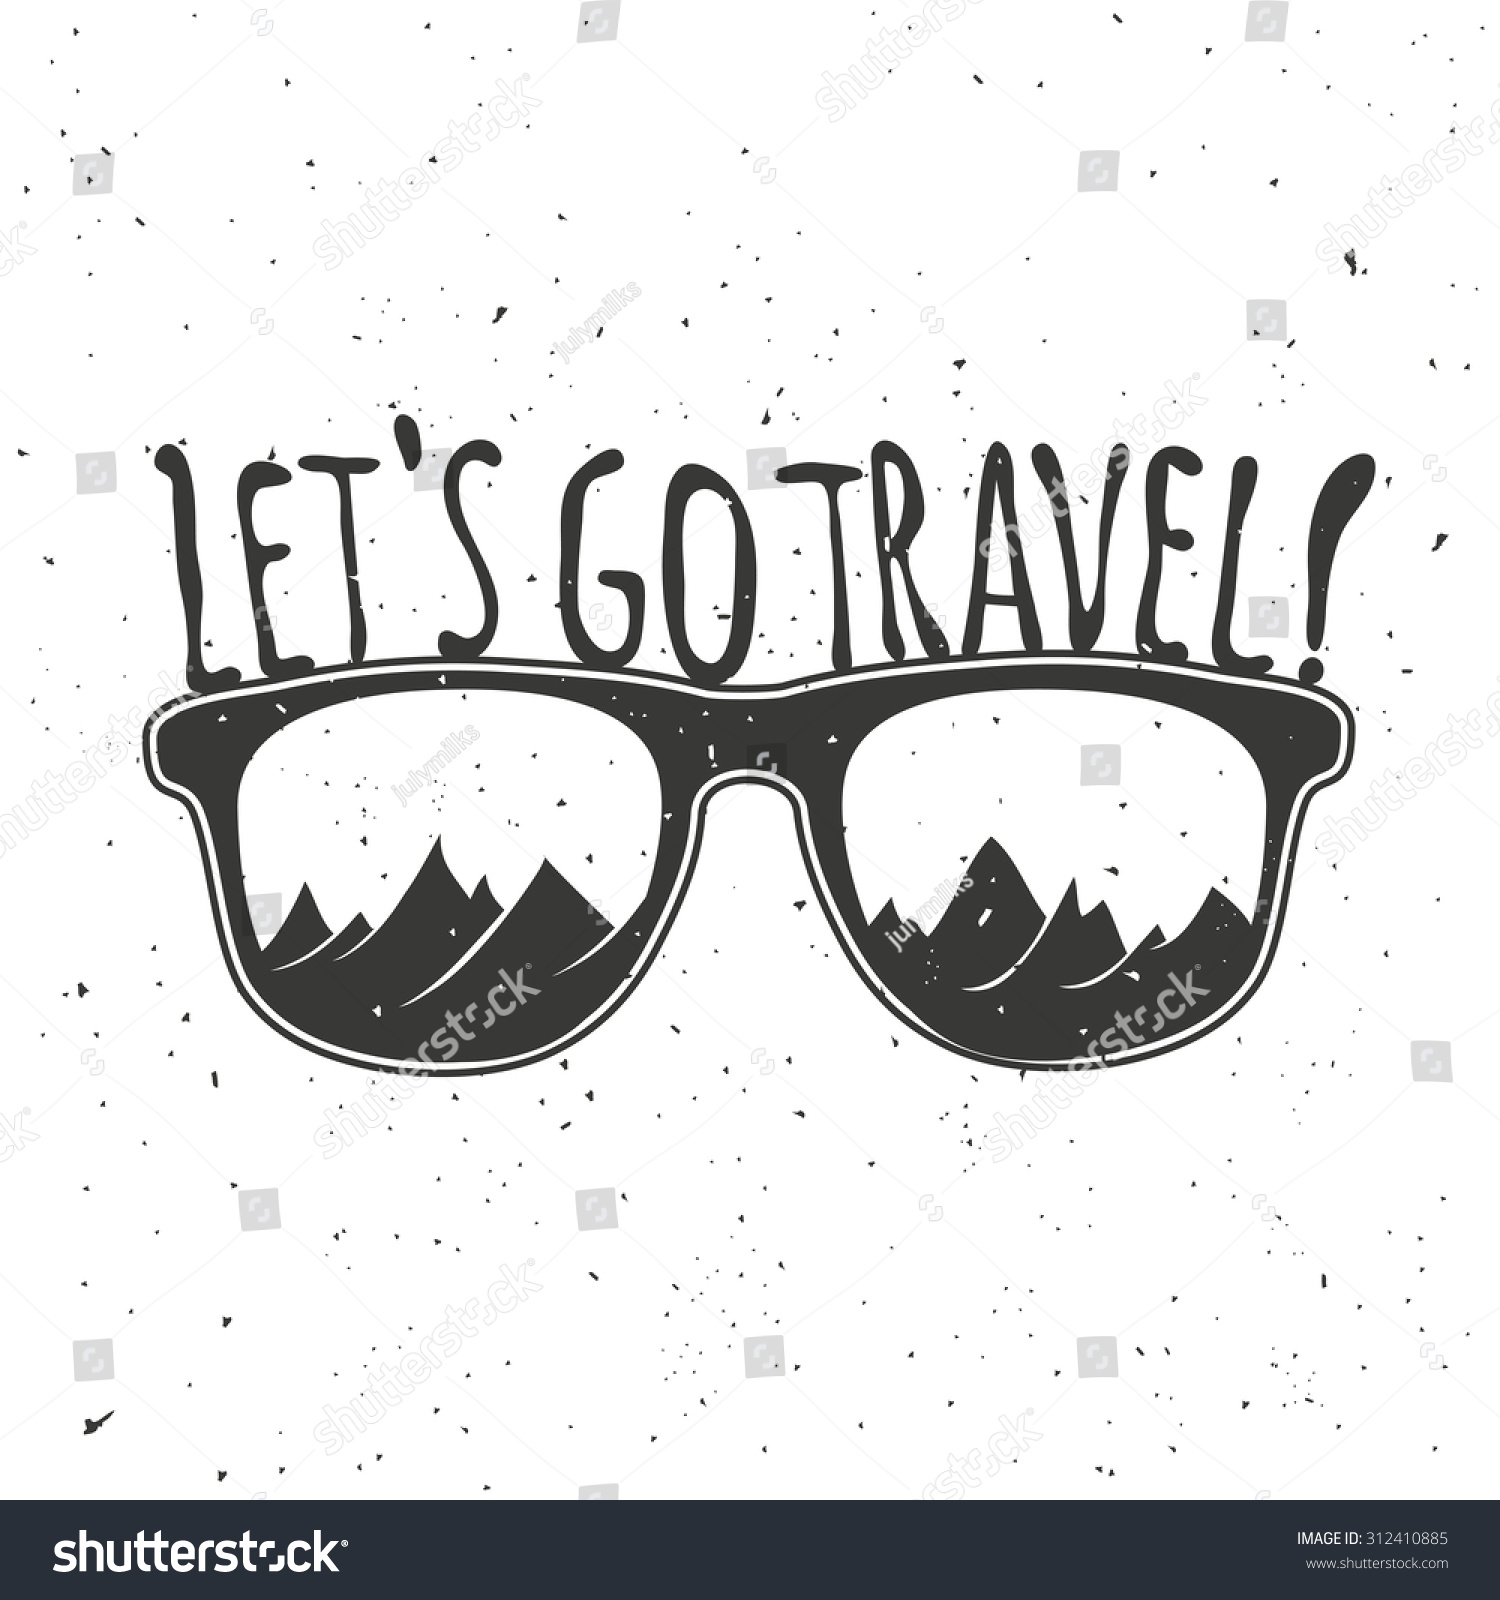 Lets Go Travel Vintage Hipster Vector Stock Vector